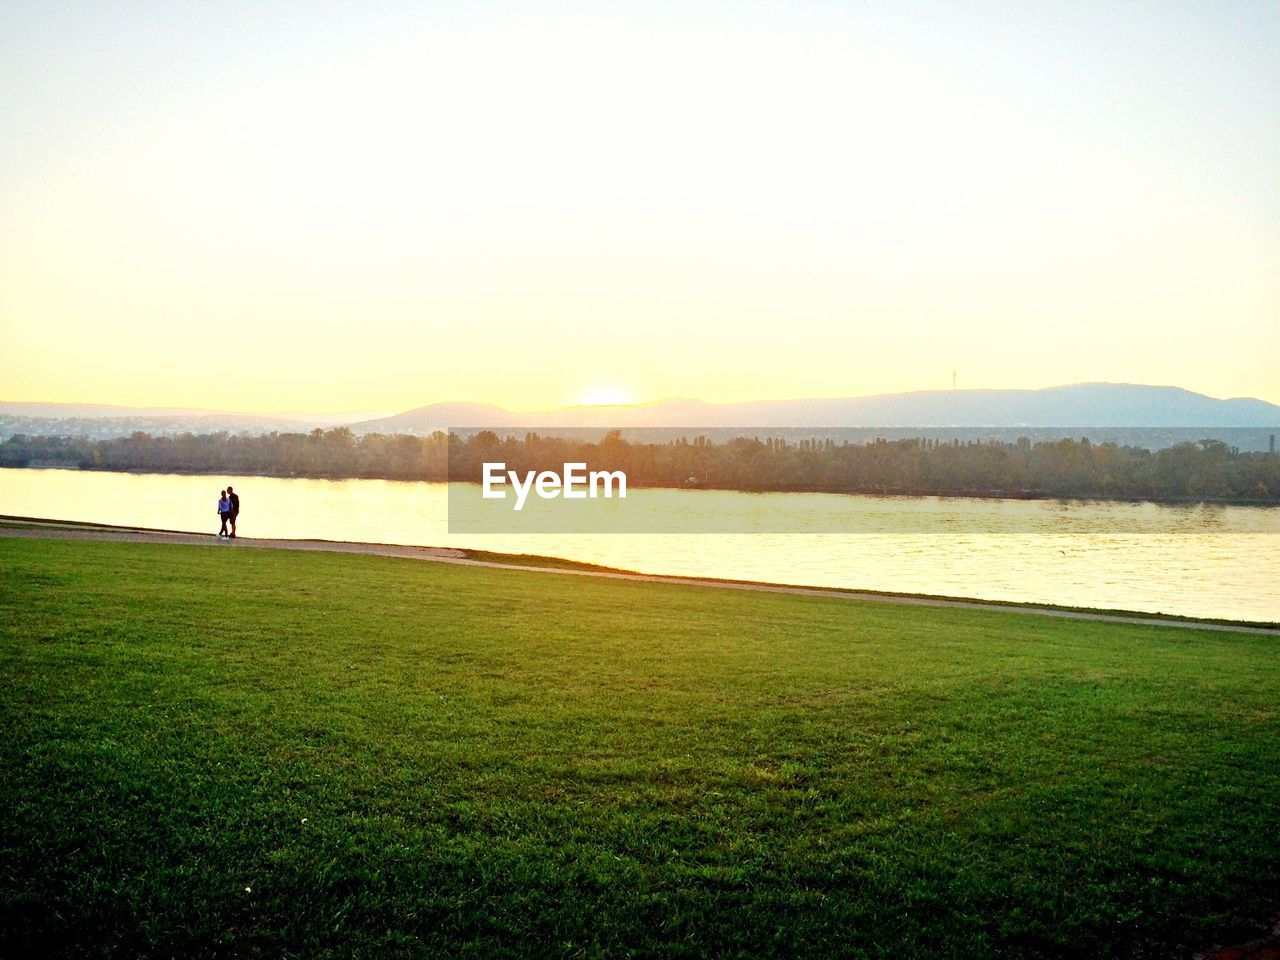 grass, sunset, nature, lake, scenics, water, beauty in nature, silhouette, tranquil scene, golf course, leisure activity, golf, outdoors, one person, lifestyles, landscape, people, adult, standing, full length, sky, mountain, real people, adults only, golfer, clear sky, green - golf course, only women, golf club, one woman only, day